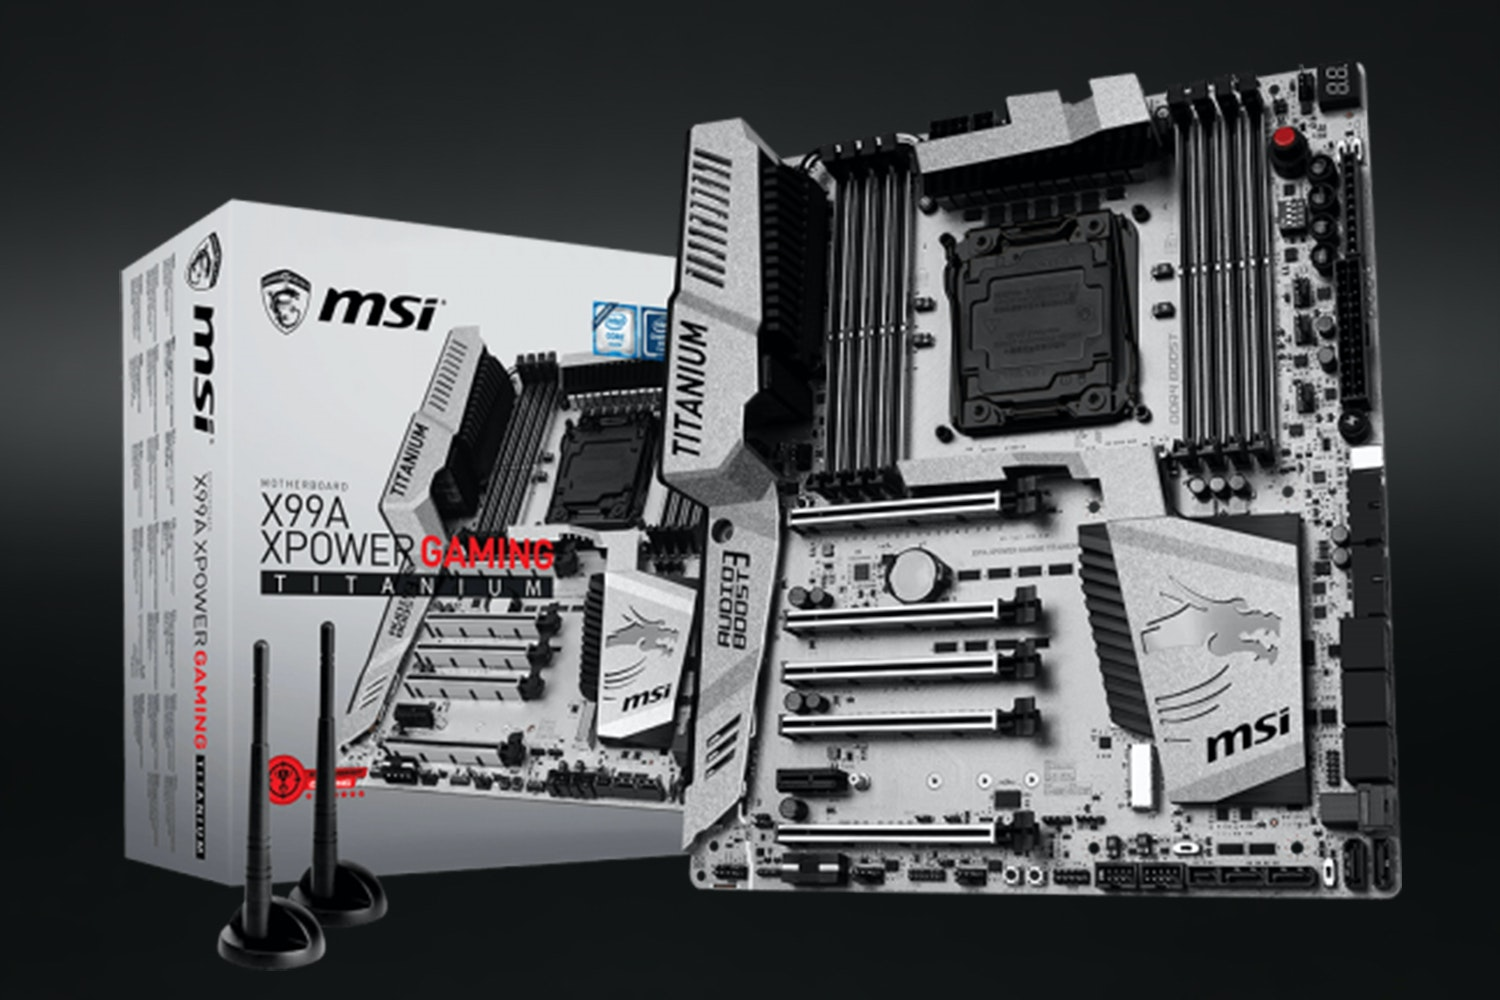 X99A XPower Gaming Titanium Motherboard